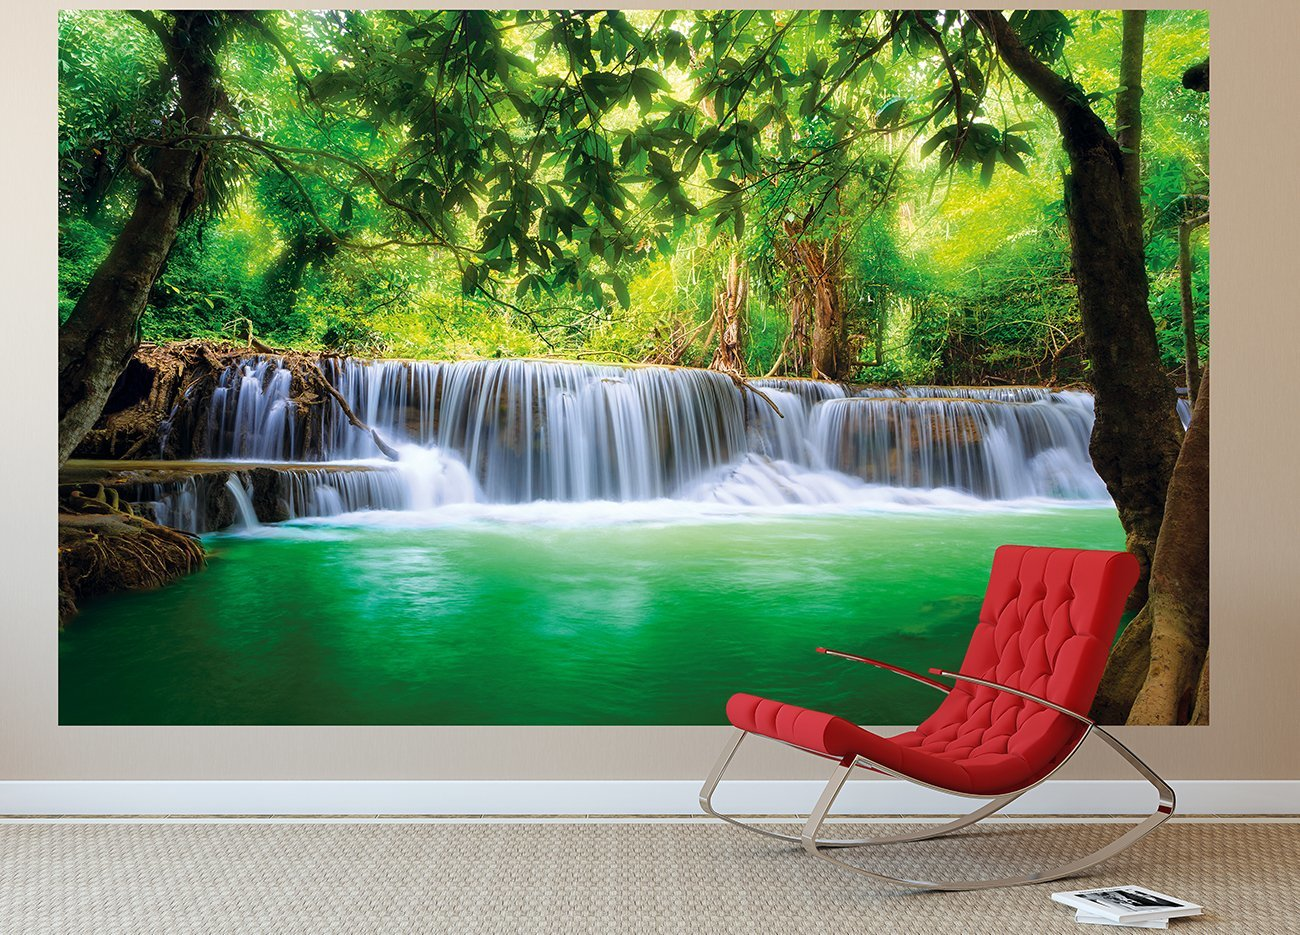 paradise photo wall paper waterfall in the jungle jungle river kanchanaburi thailand si sawa. Black Bedroom Furniture Sets. Home Design Ideas